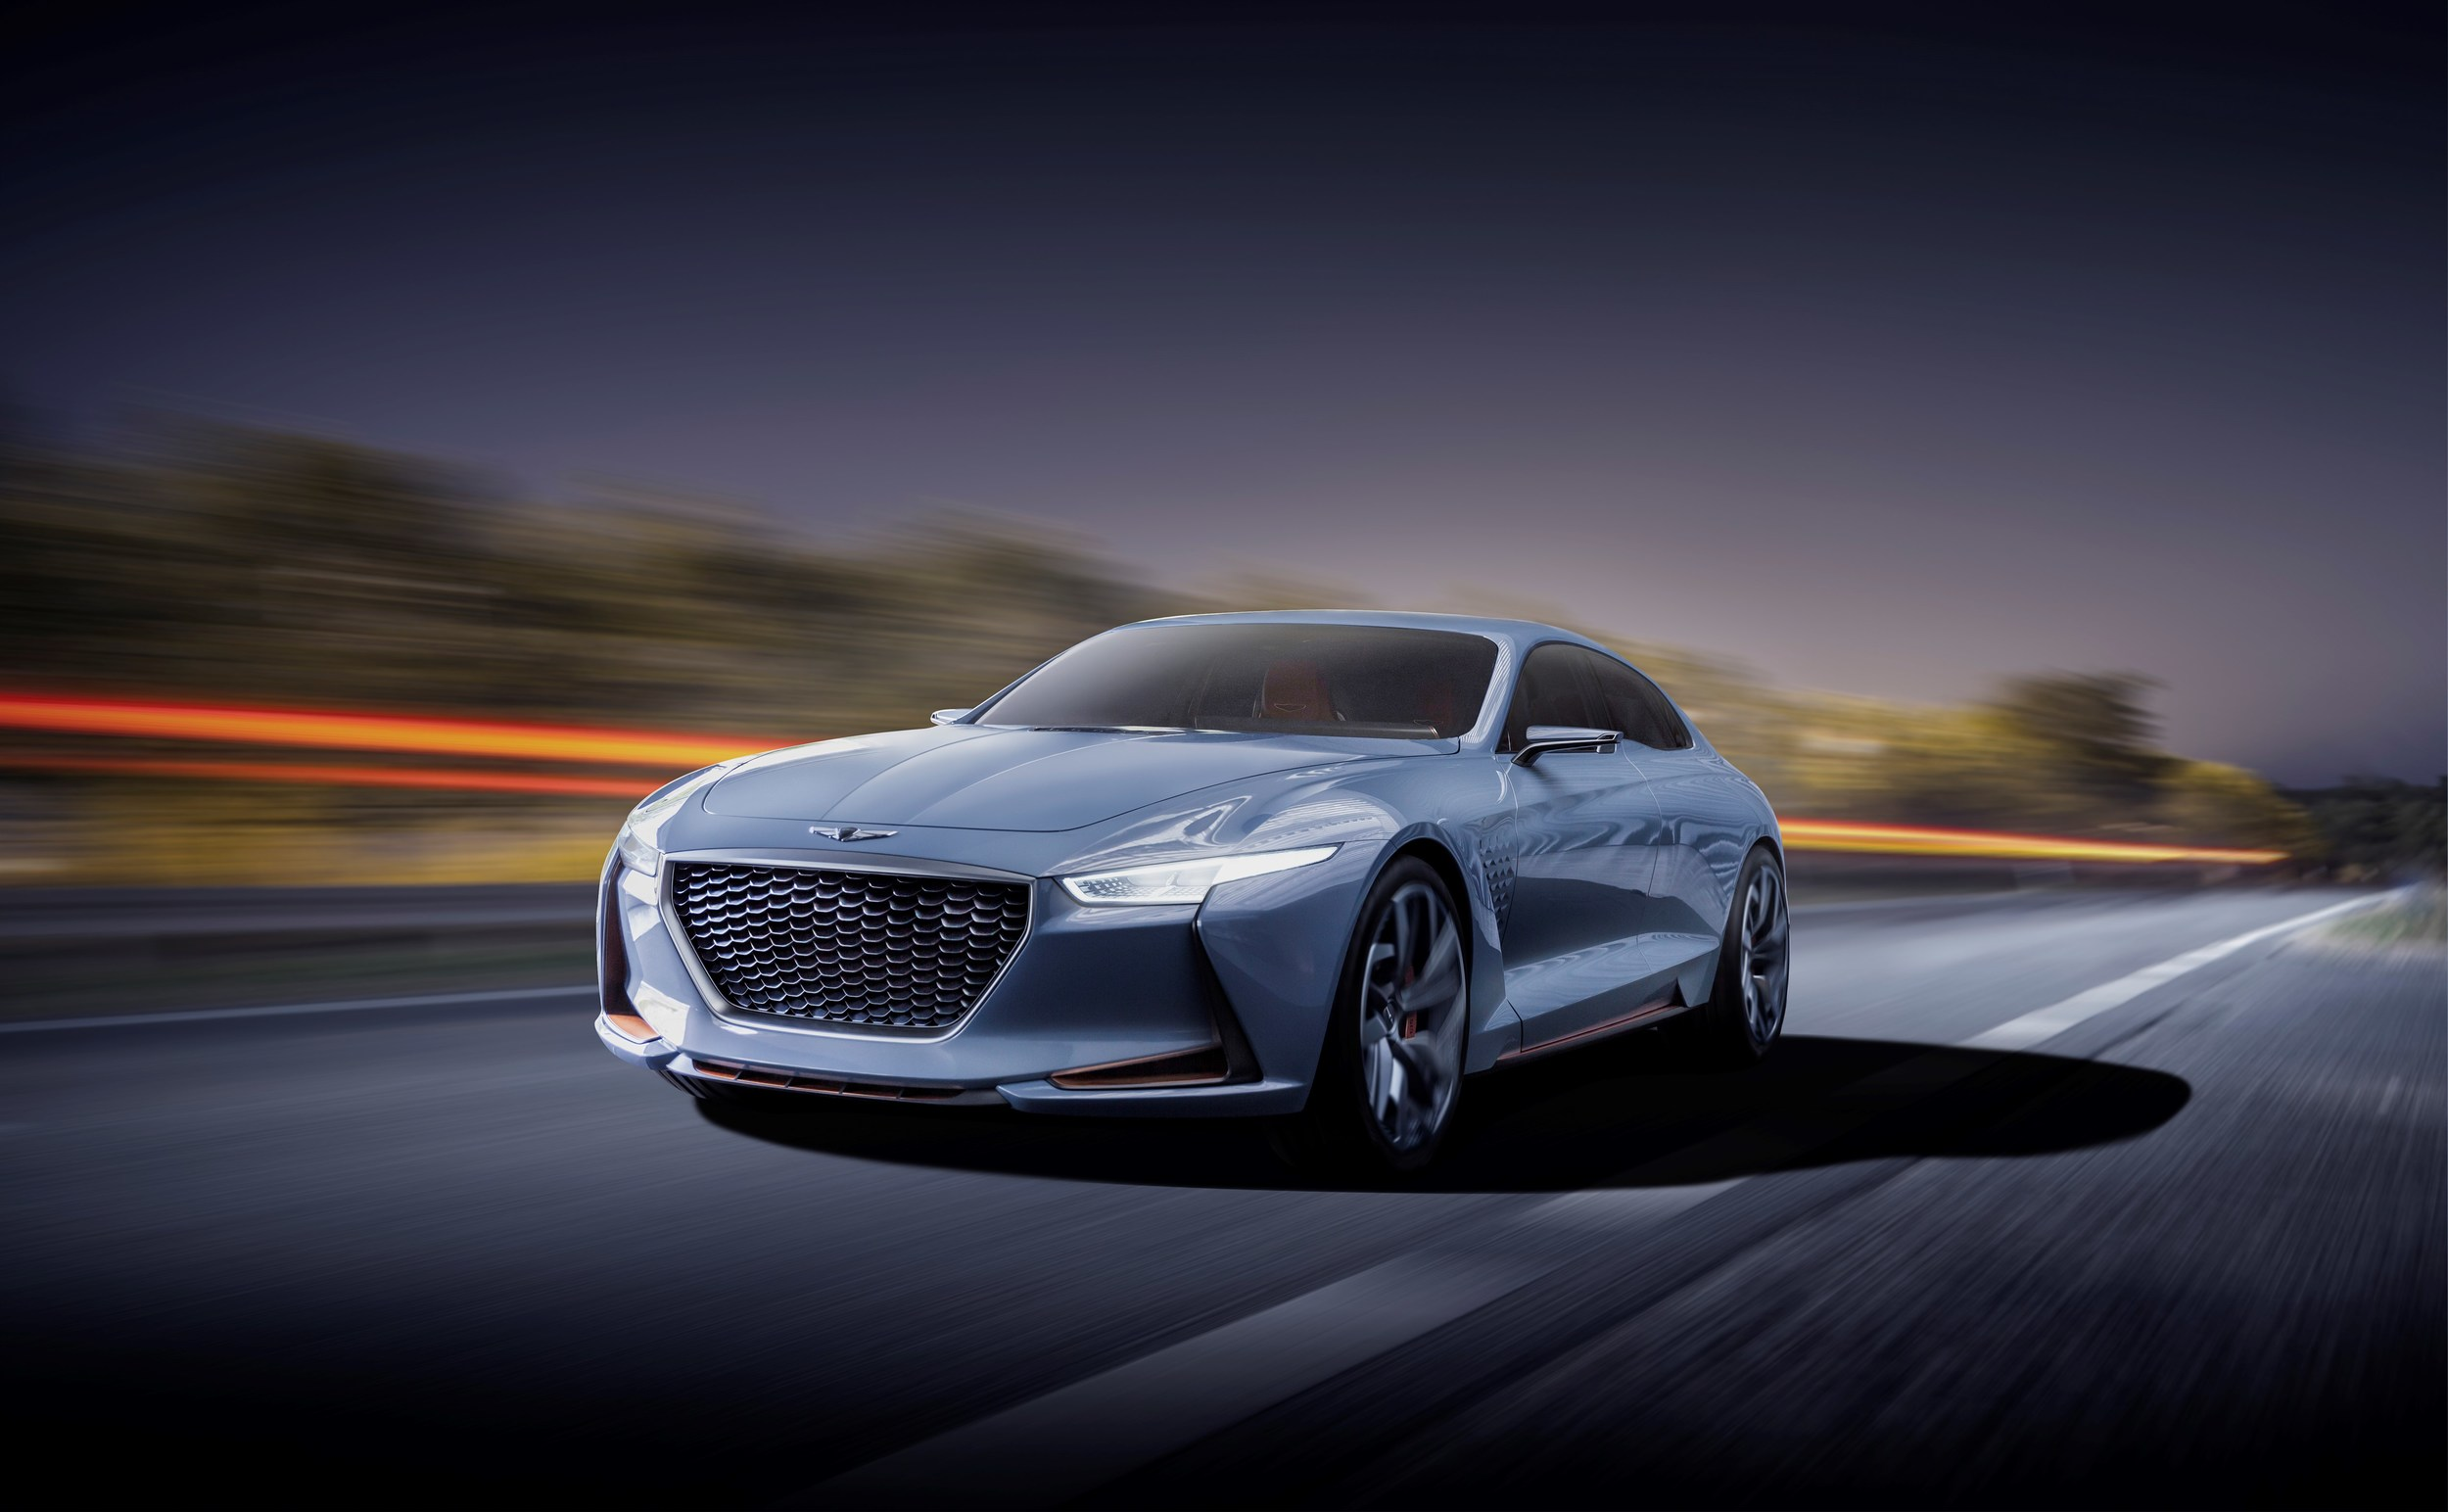 New Genesis Coupe Coming By 2020 Hyundai Trademark Points